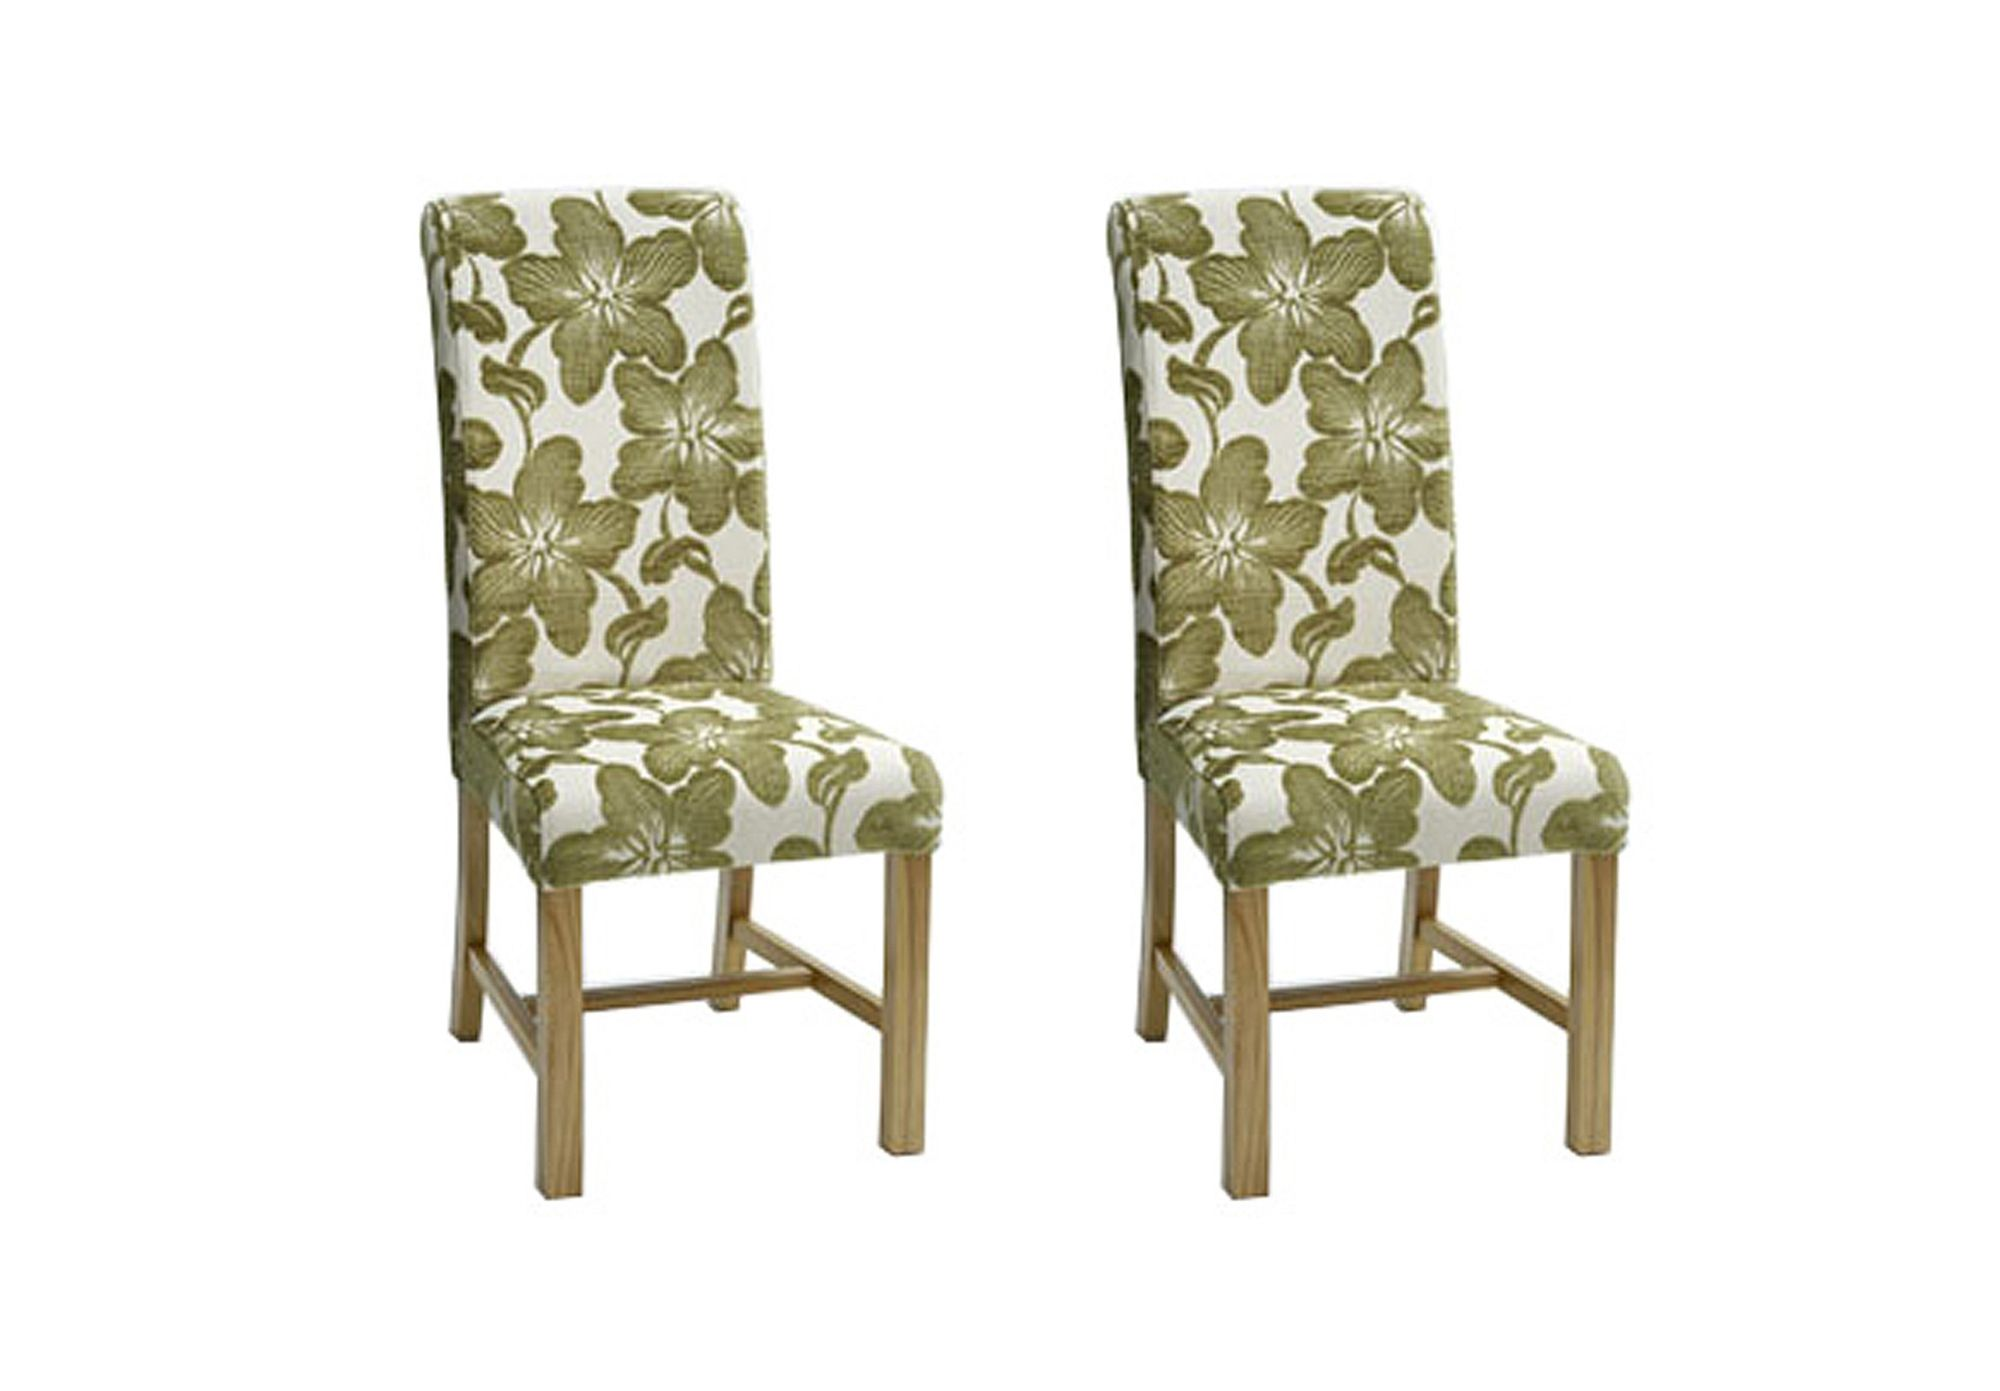 Furniture Village Aylesbury furnitureland lyon pair of dining chairs; furniture village